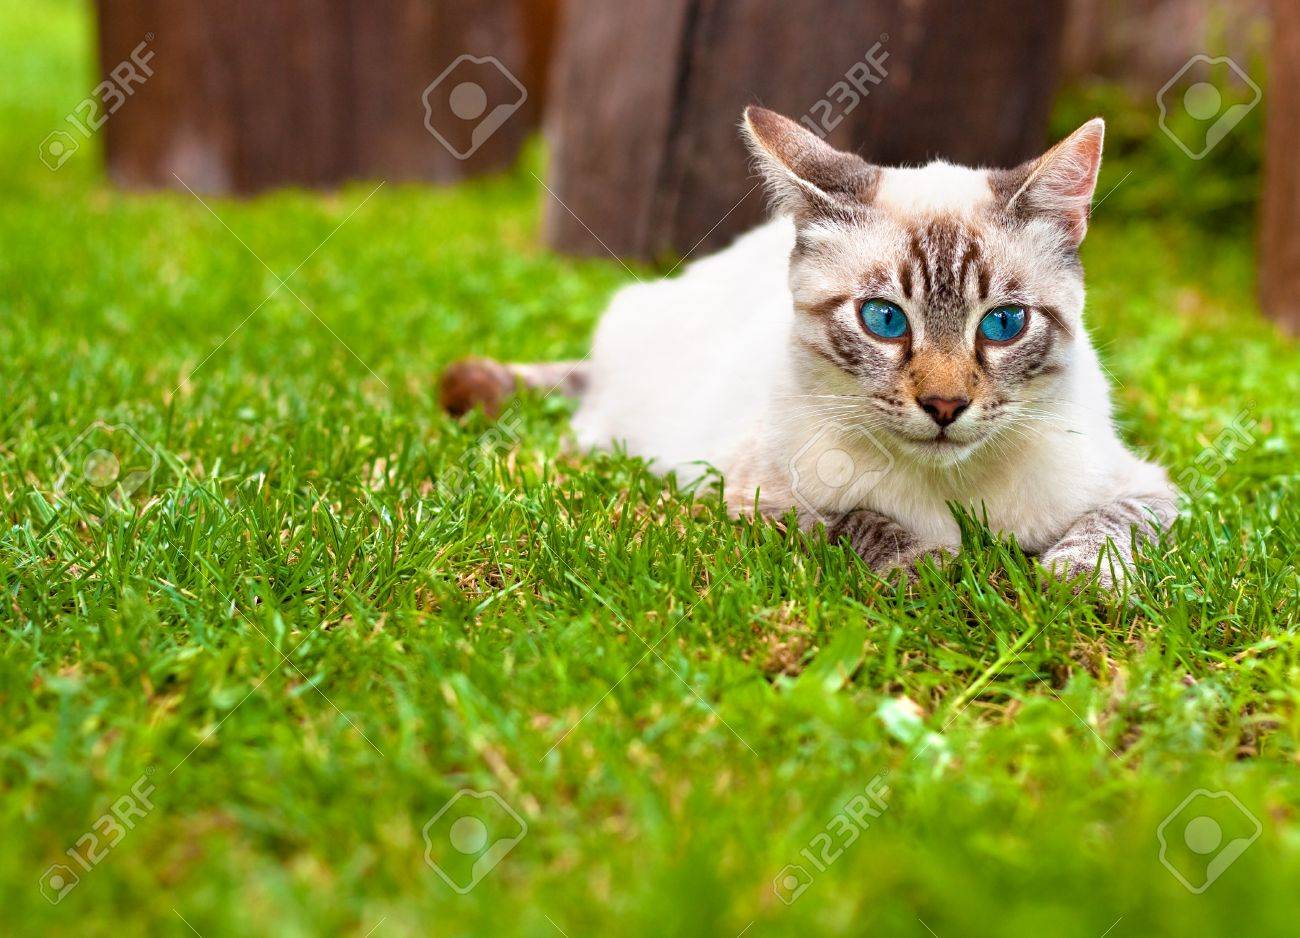 Very Cute Cat With Blue Eyes Laying In The Grass Stock